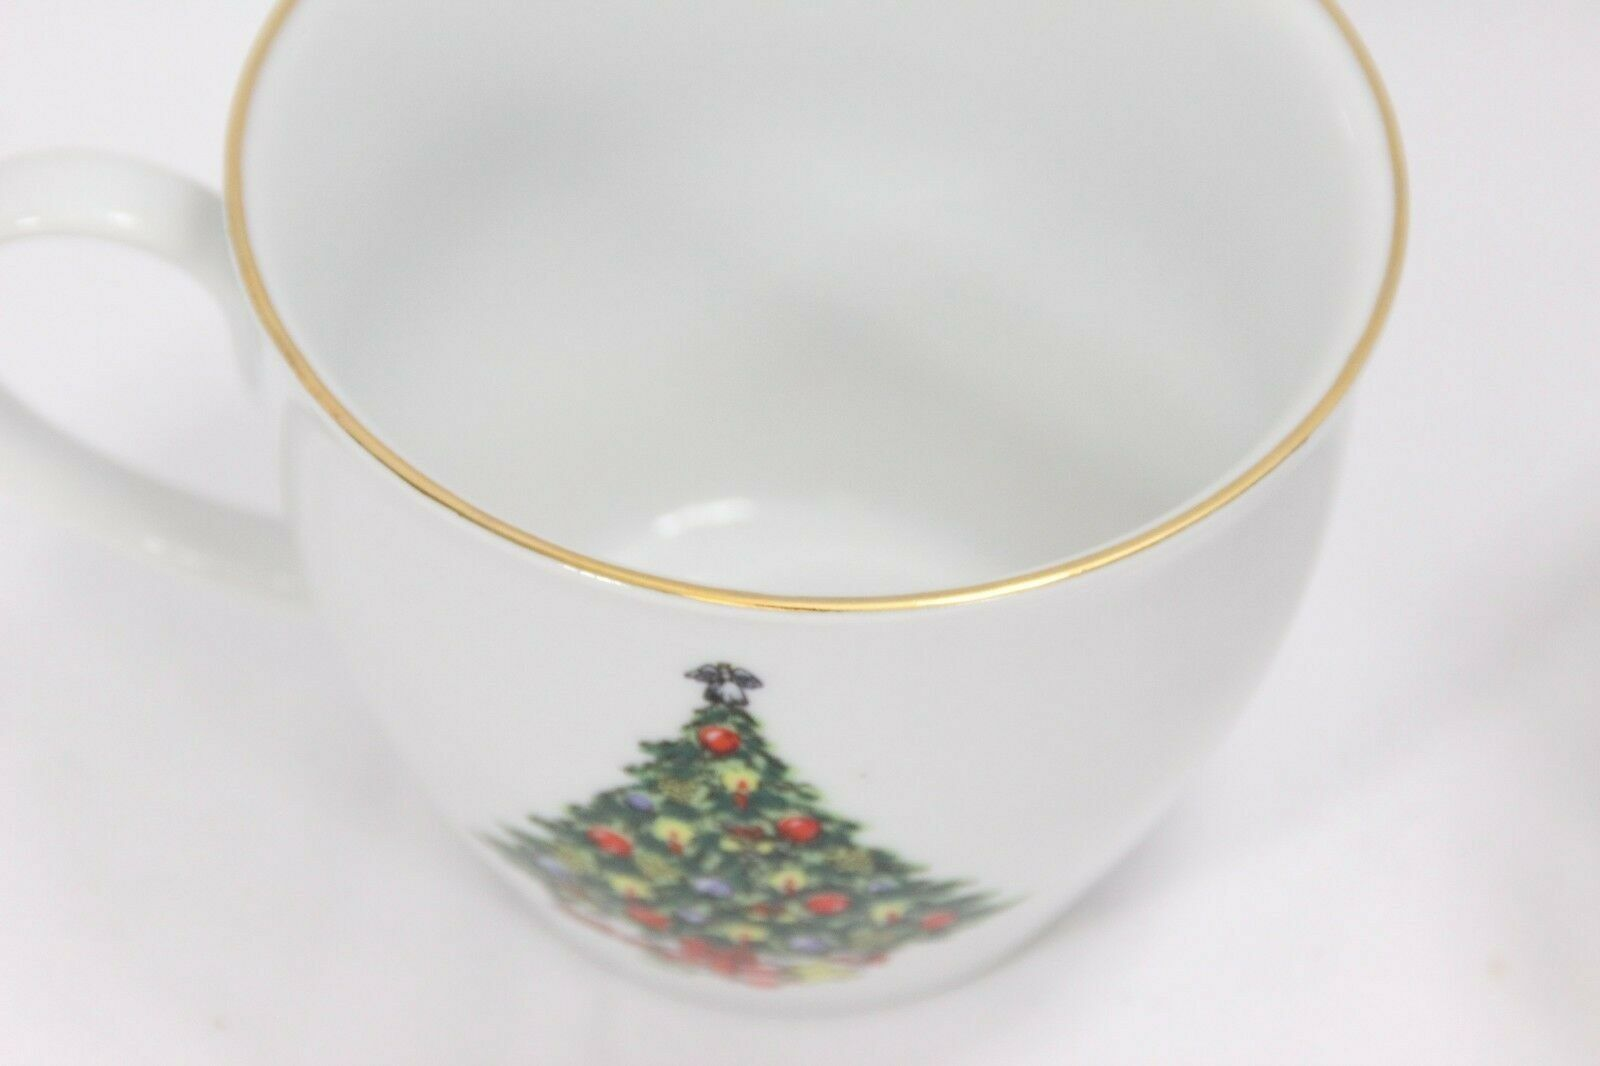 Jamestown Xmas Treasure Bowls Cups Saucers Lot of 12 image 8